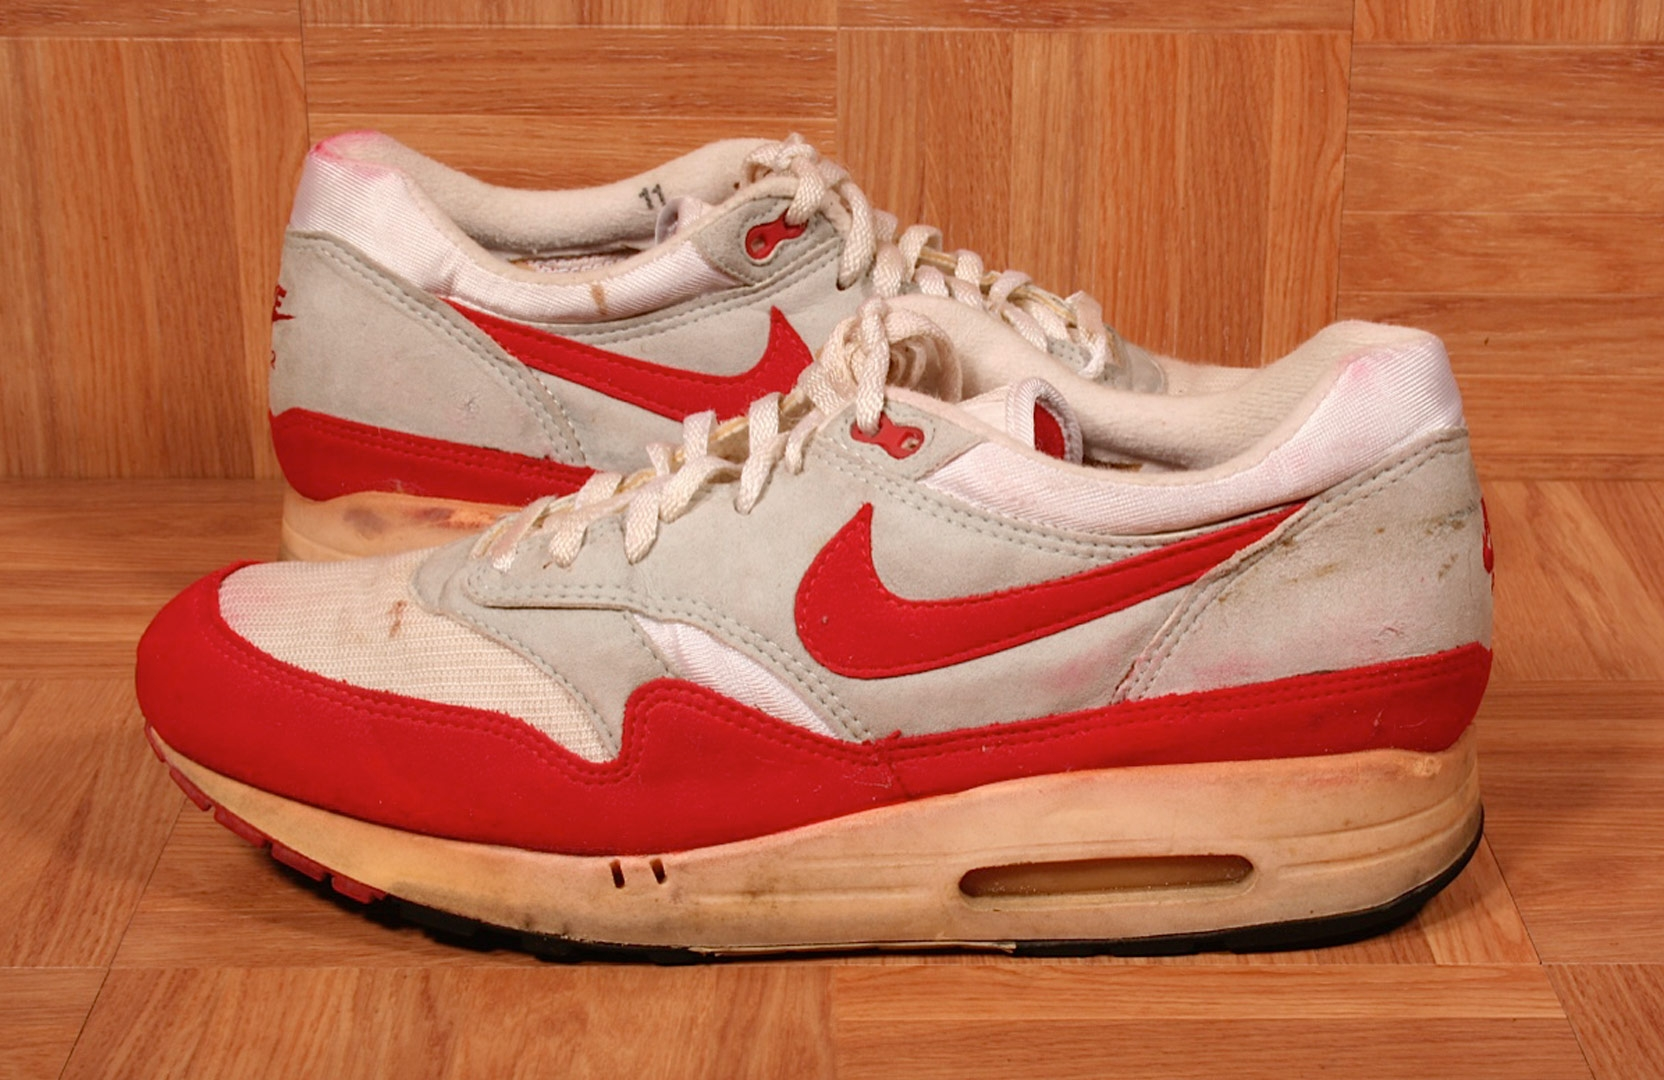 Air Dax Day Exclusive: Jordan Geller from Shoezeum picks his top 10 Air Maxes of all time